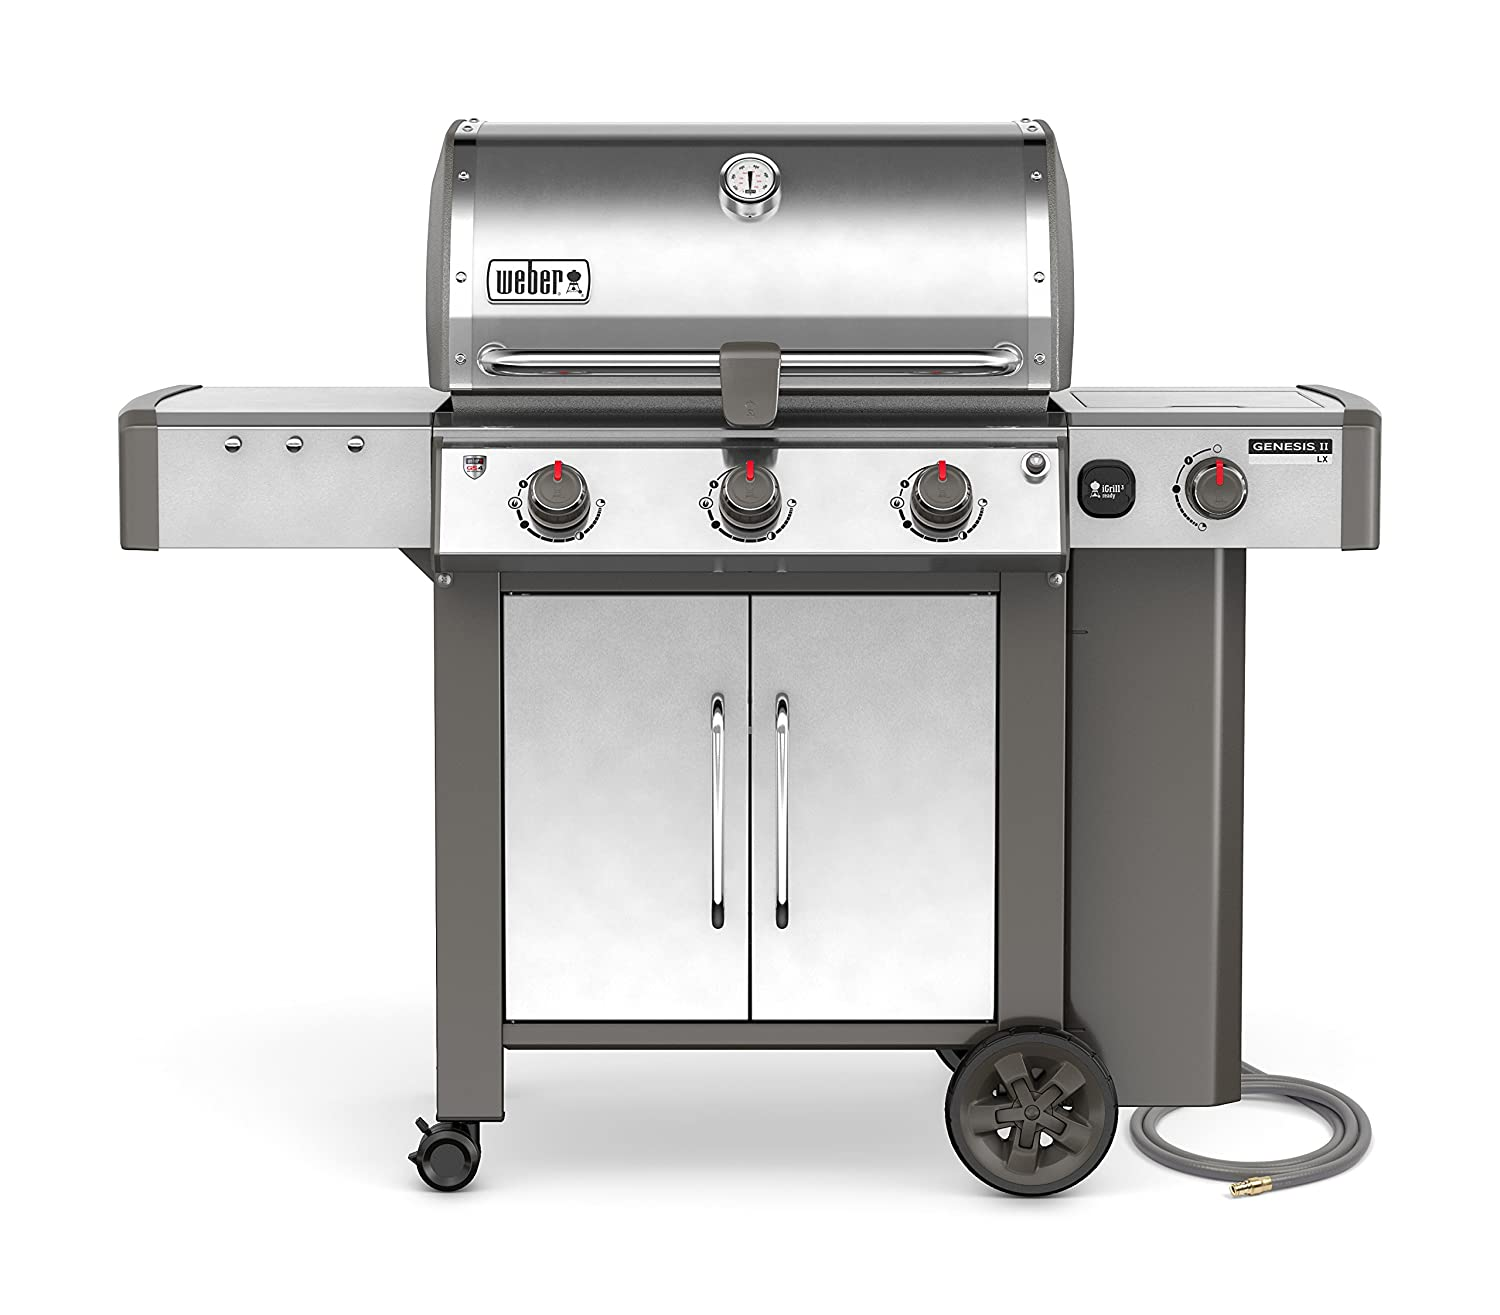 Weber Genesis II LX S-340 Natural Gas Grill